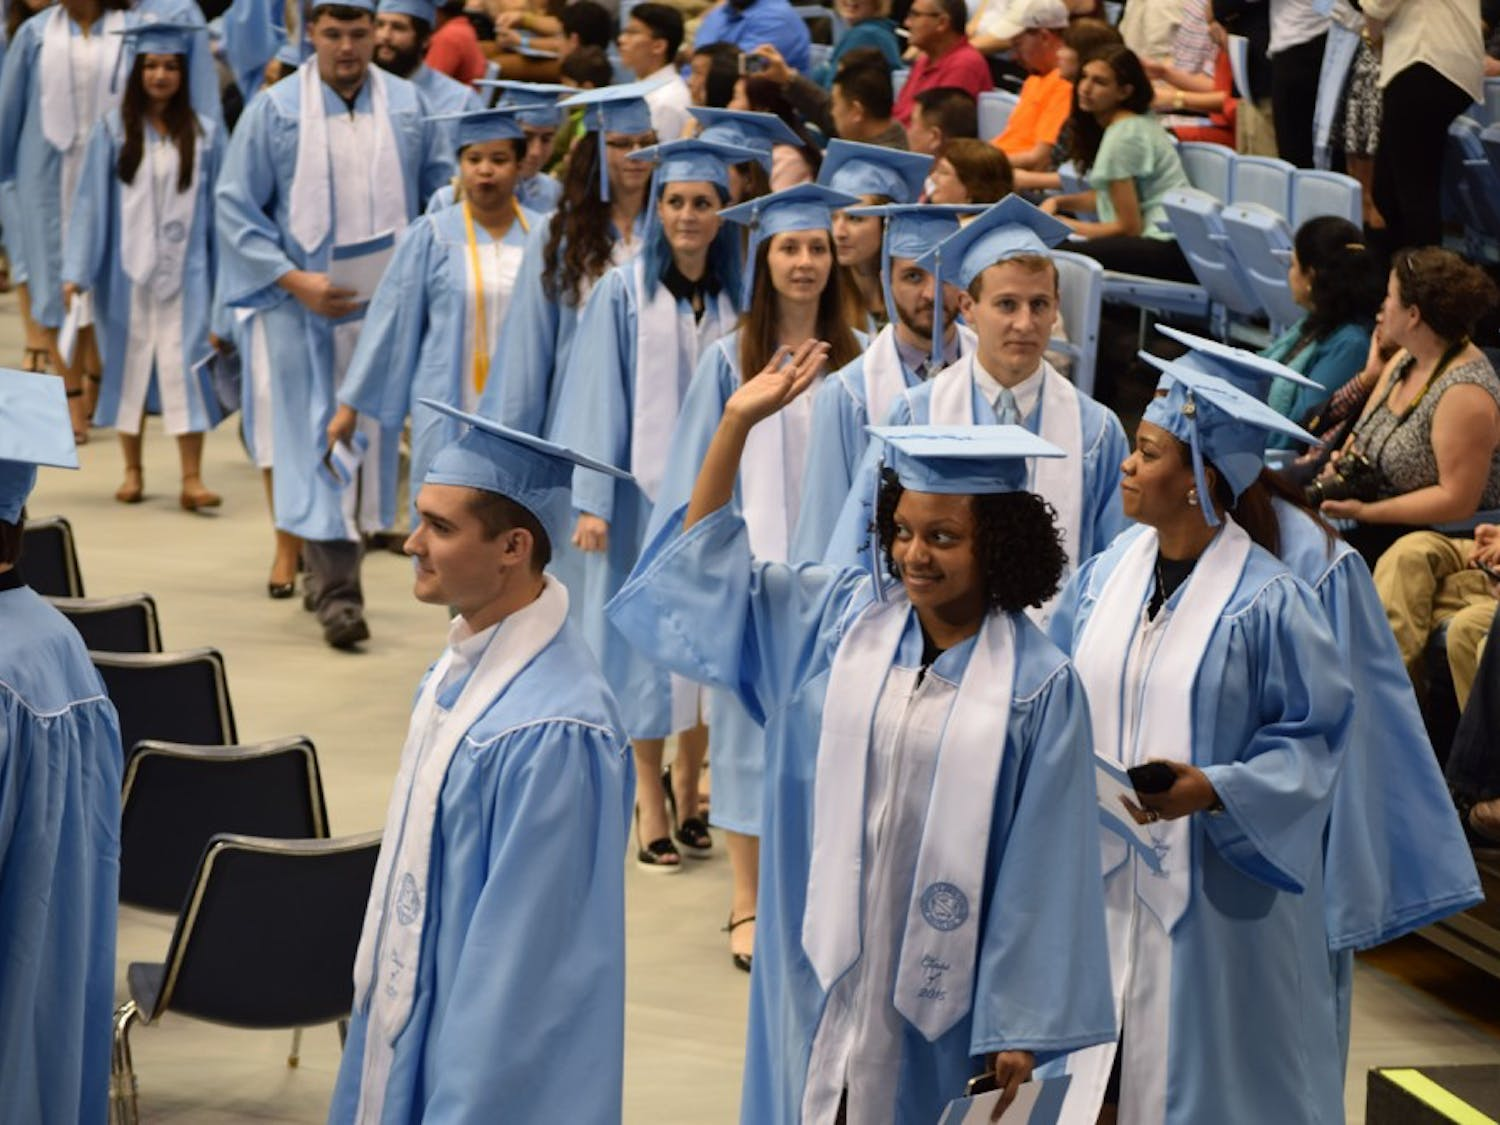 Students walk in for graduation.